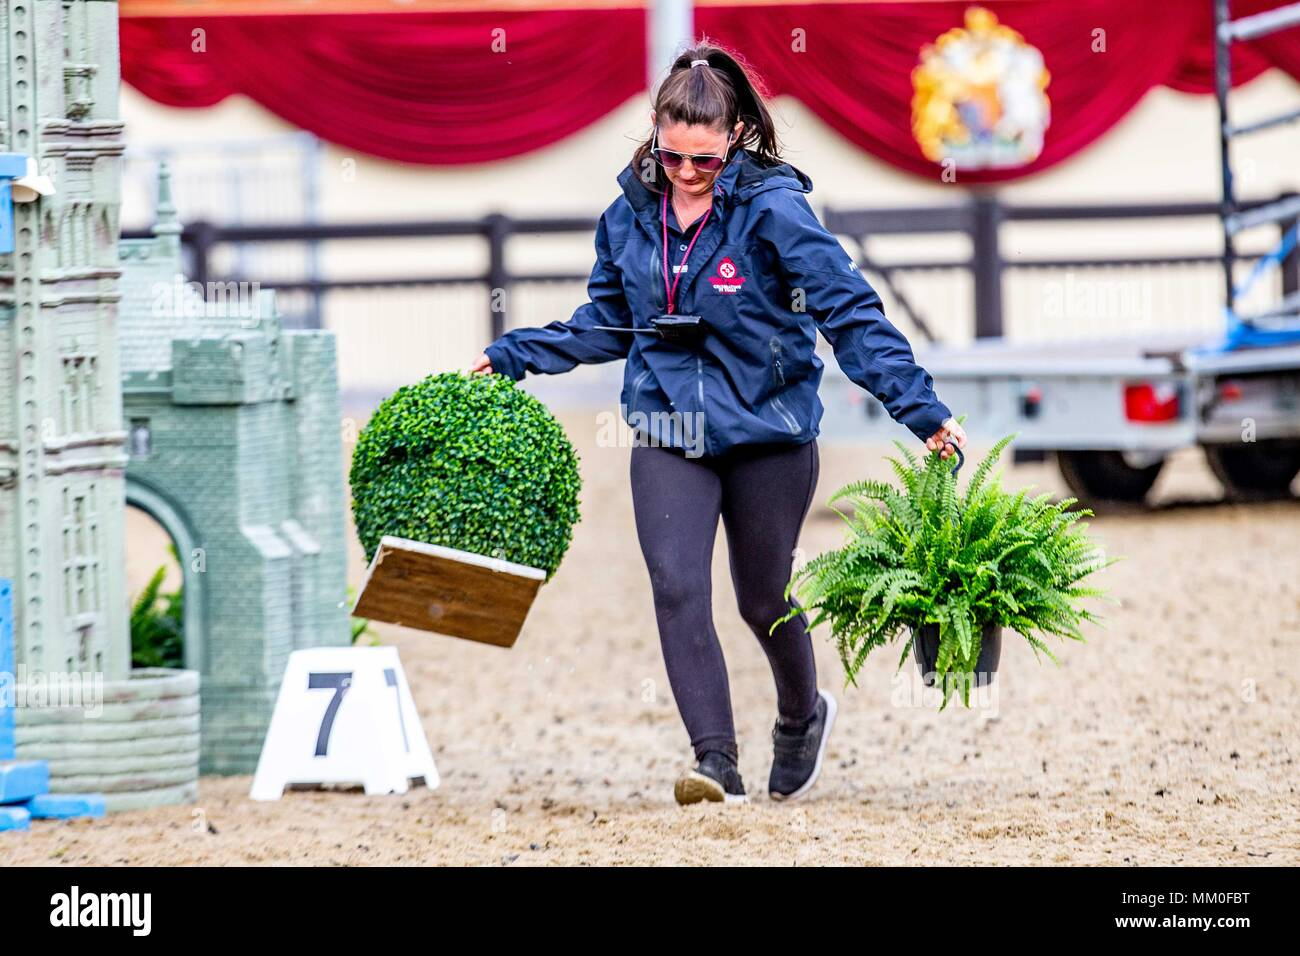 Windsor, Berkshire, UK. 9th May 2018. Day 1. Royal Windsor Horse Show. Windsor. Berkshire. UK.  Showjumping. Arena party. GBR. 09/05/2018. Credit: Sport In Pictures/Alamy Live News - Stock Image